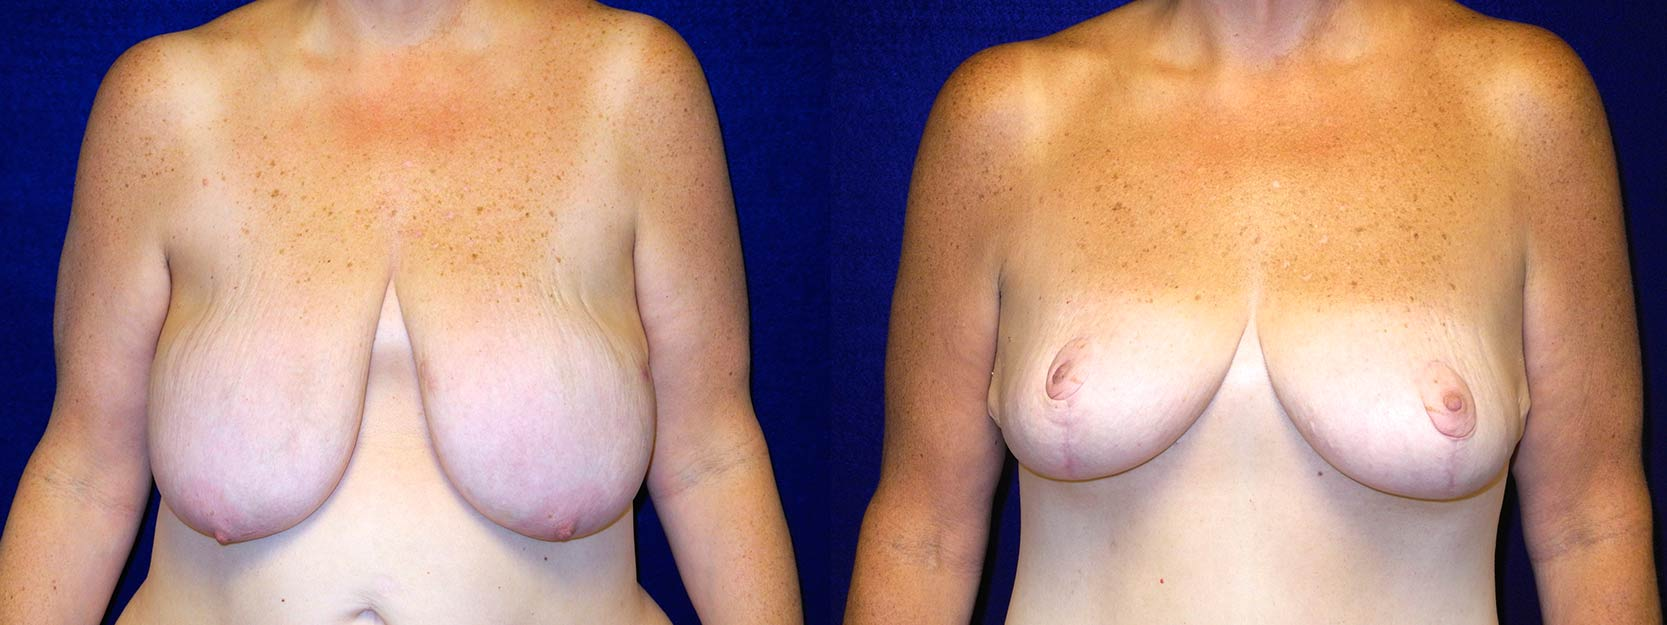 Frontal View - Breast Reduction After Weight Loss